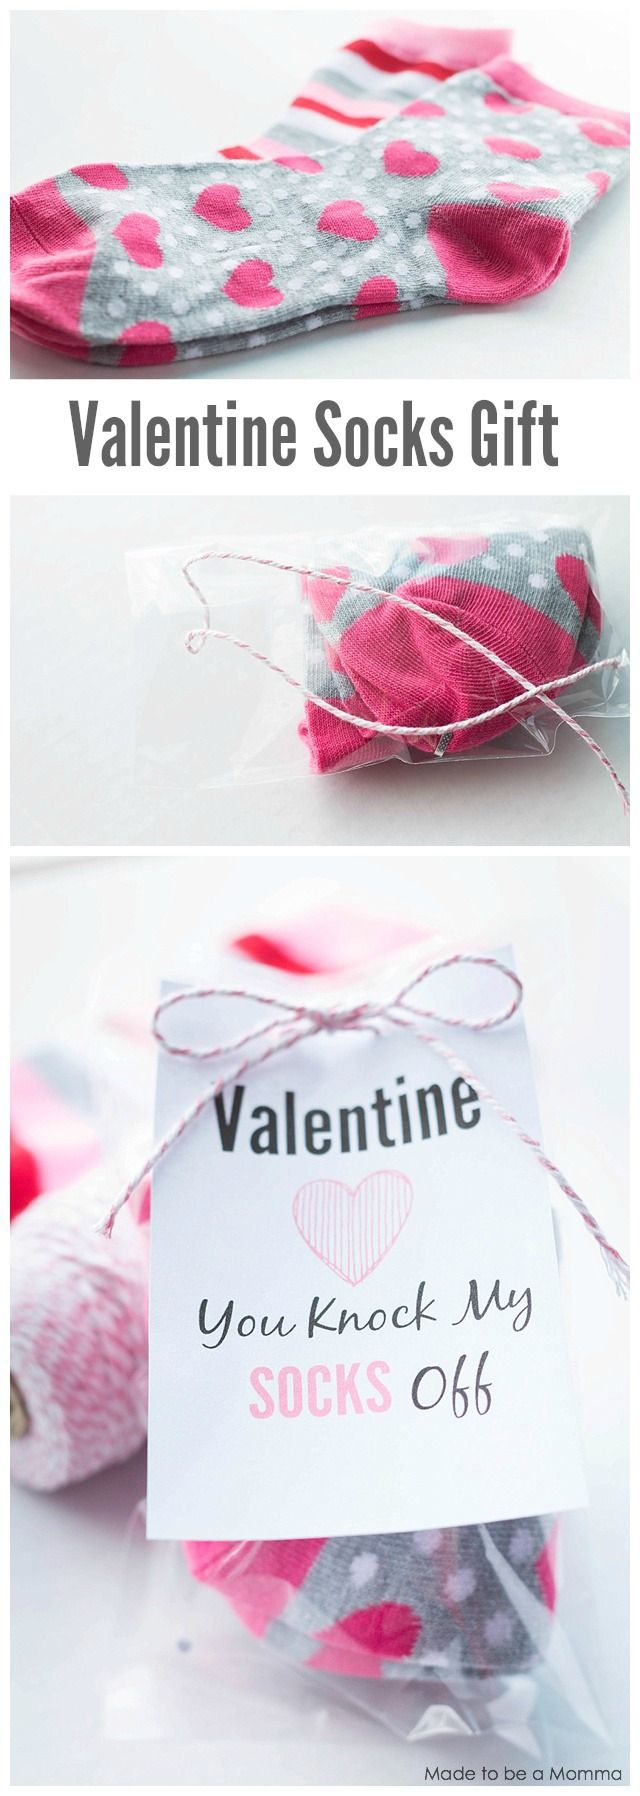 valentine socks gift idea free printable and socks